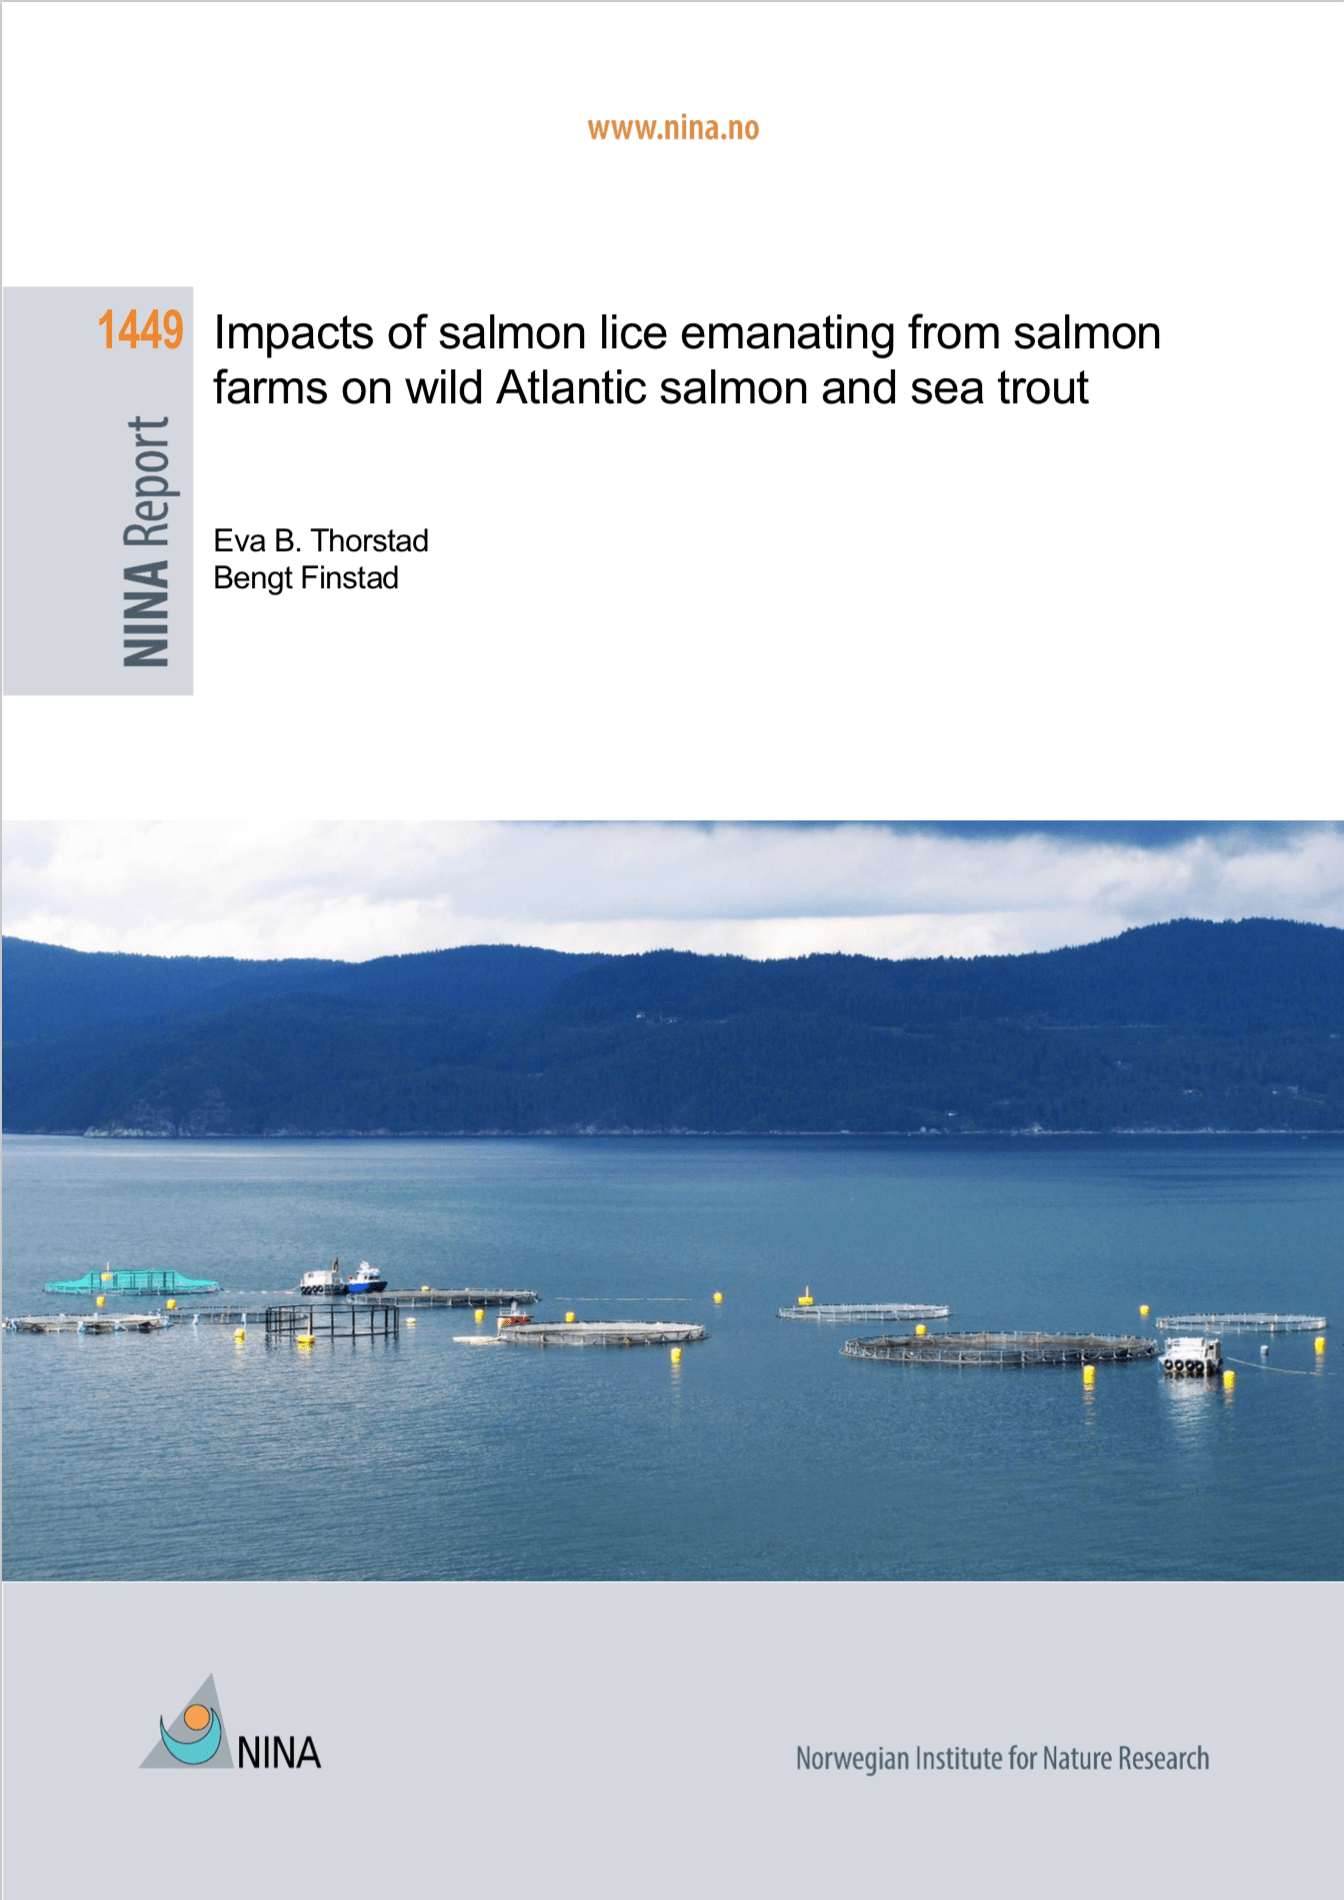 Impacts of salmon lice emanating from salmon farms on wild Atlantic salmon and sea trout